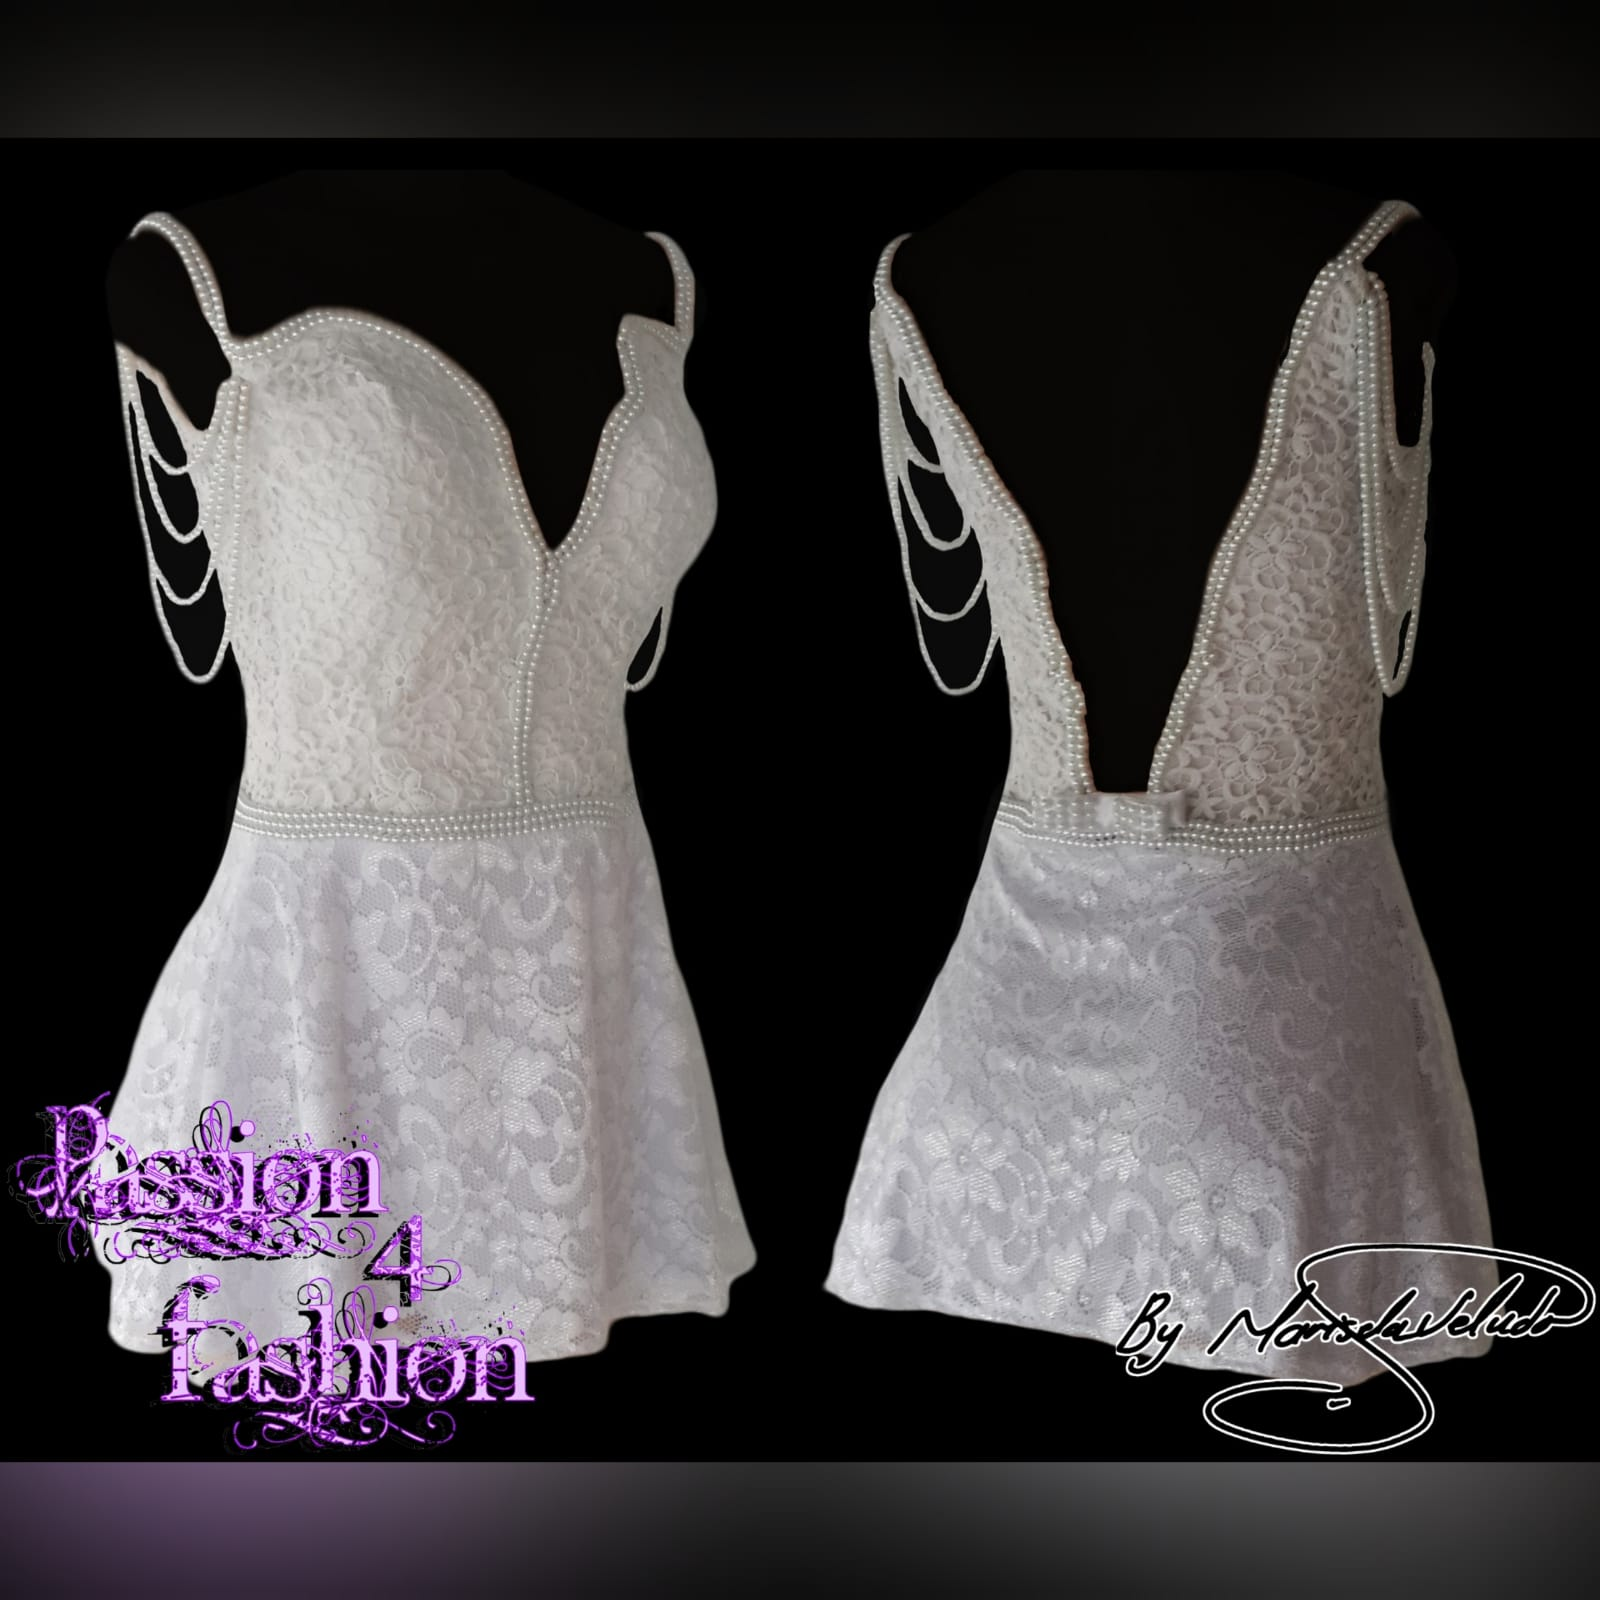 21st birthday party short evening dress 4 white short lace evening dress for a 21st birthday party. With a low v open back. Dress detailed with pearls